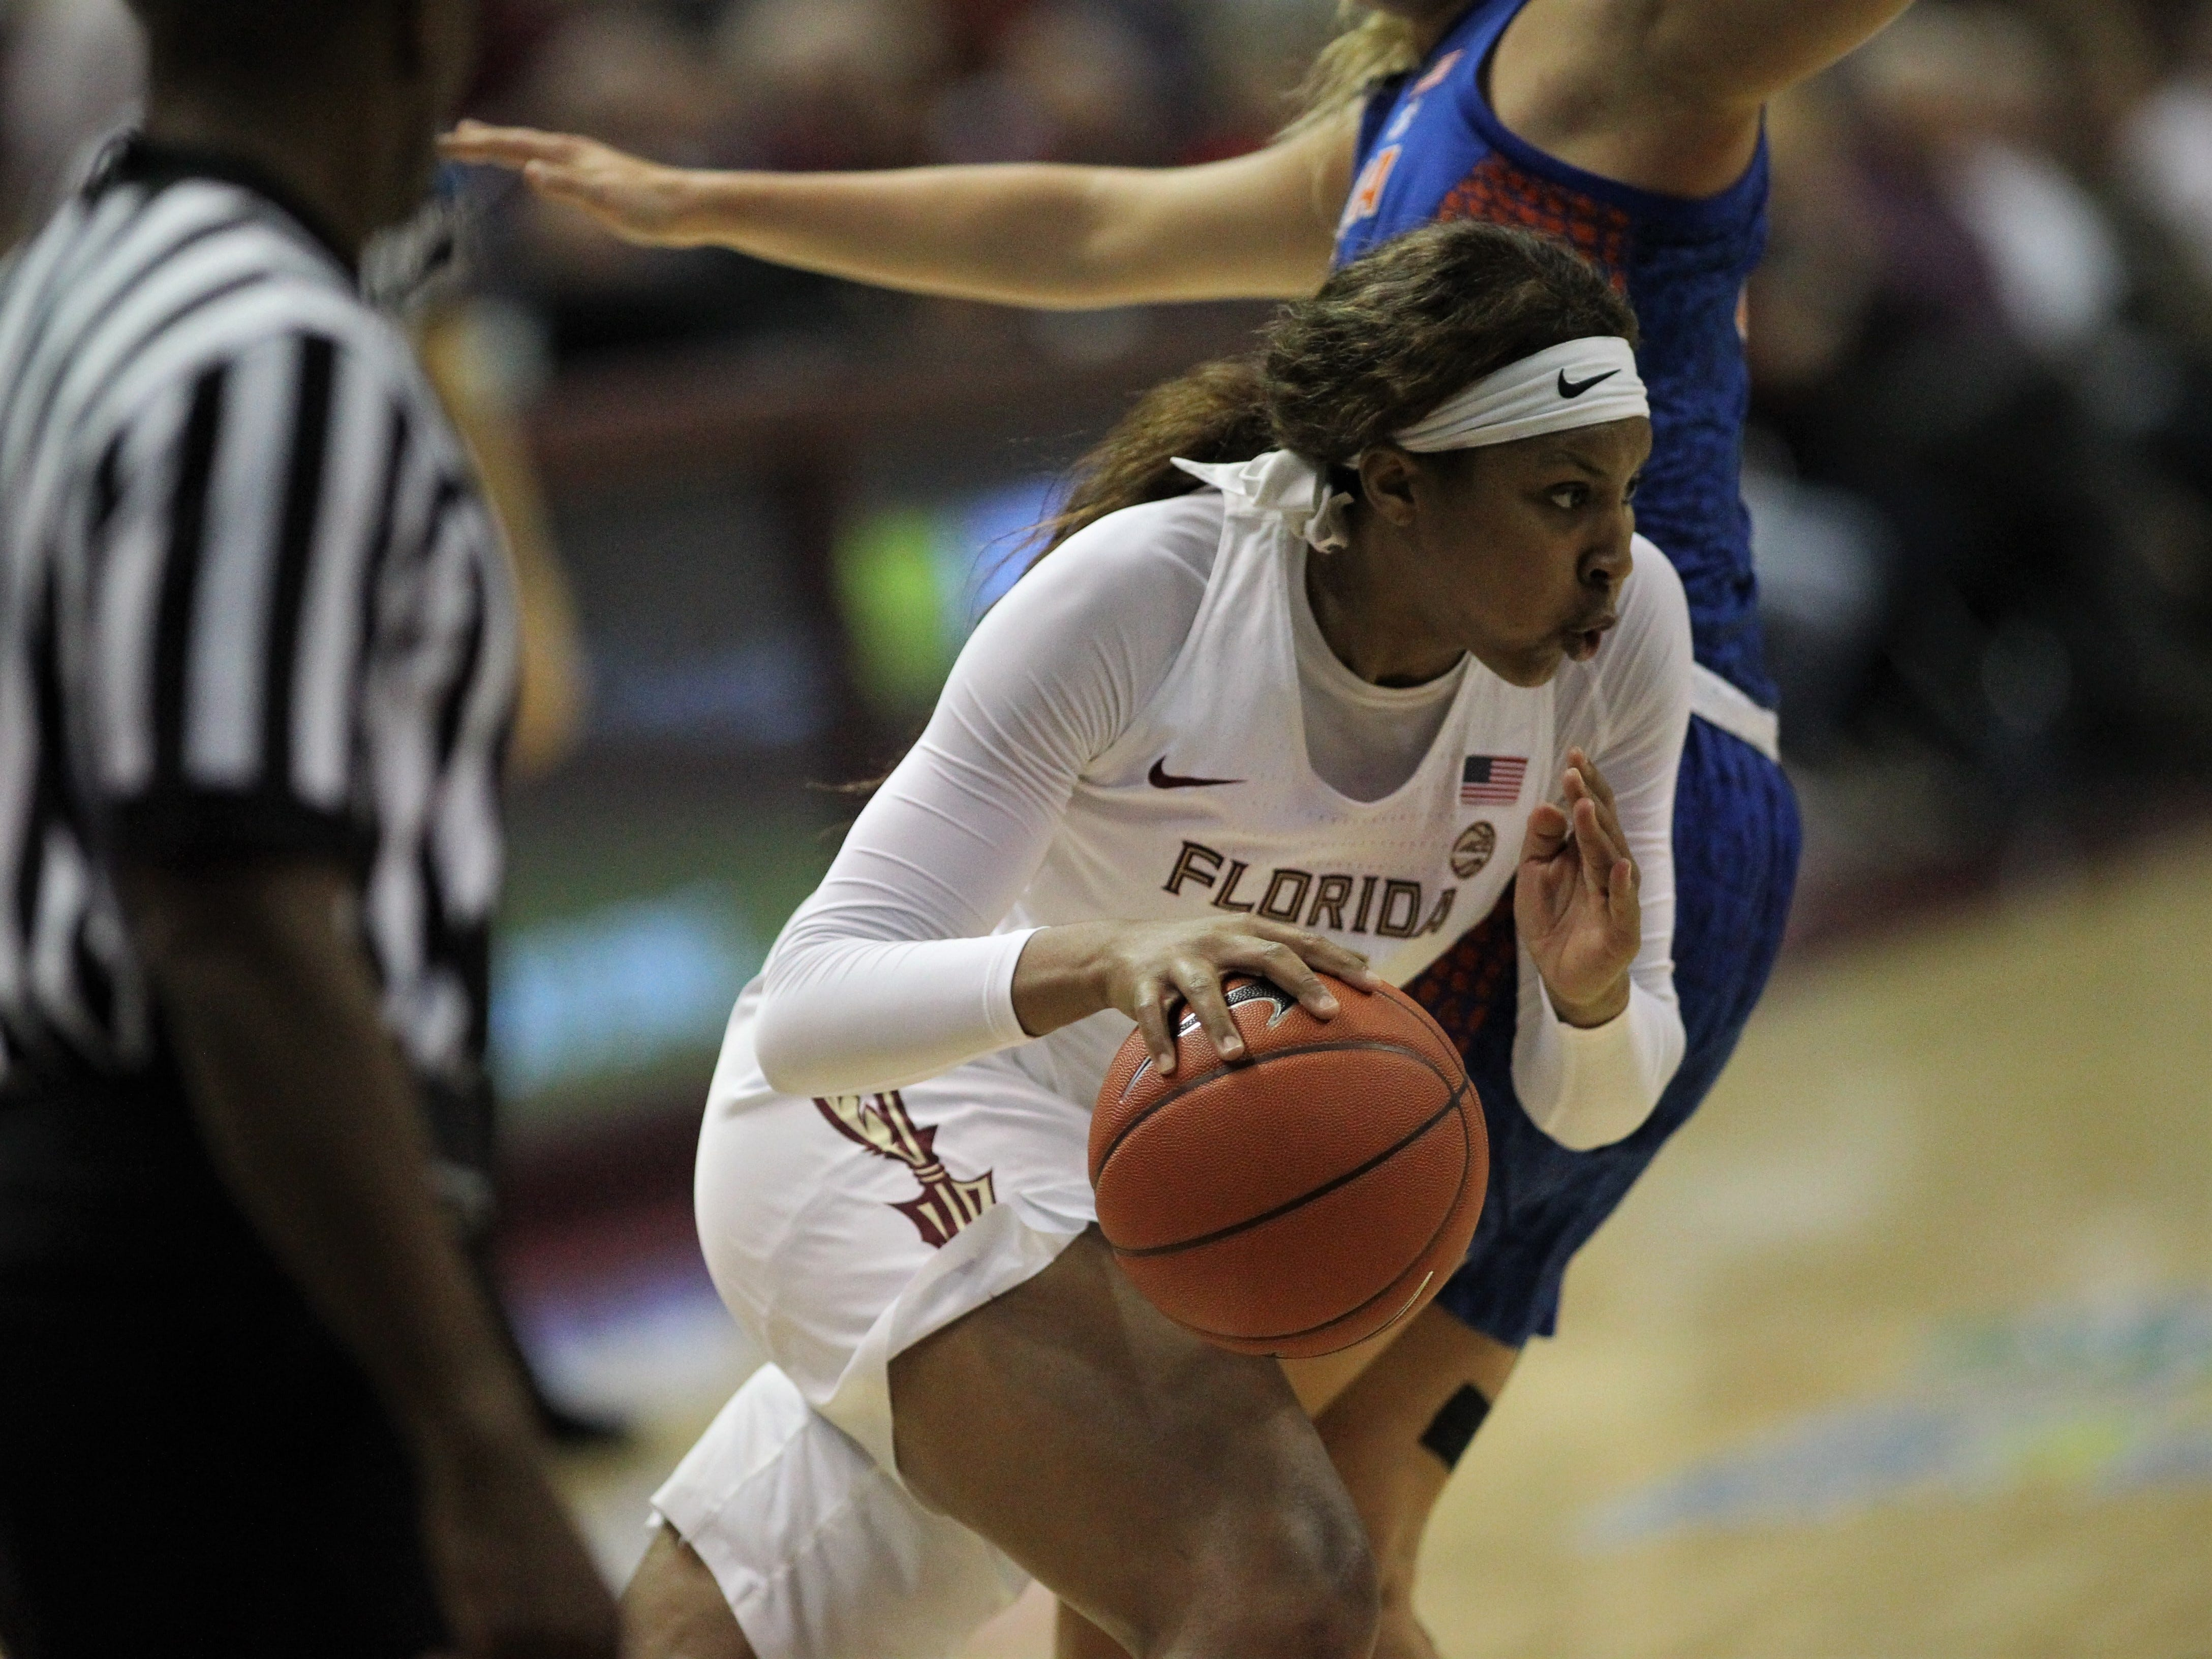 Florida State's Kiah Gillespie drives to the basket during the second half of the Seminoles' game against Florida at the Tucker Civic Center on Nov. 11, 2018.